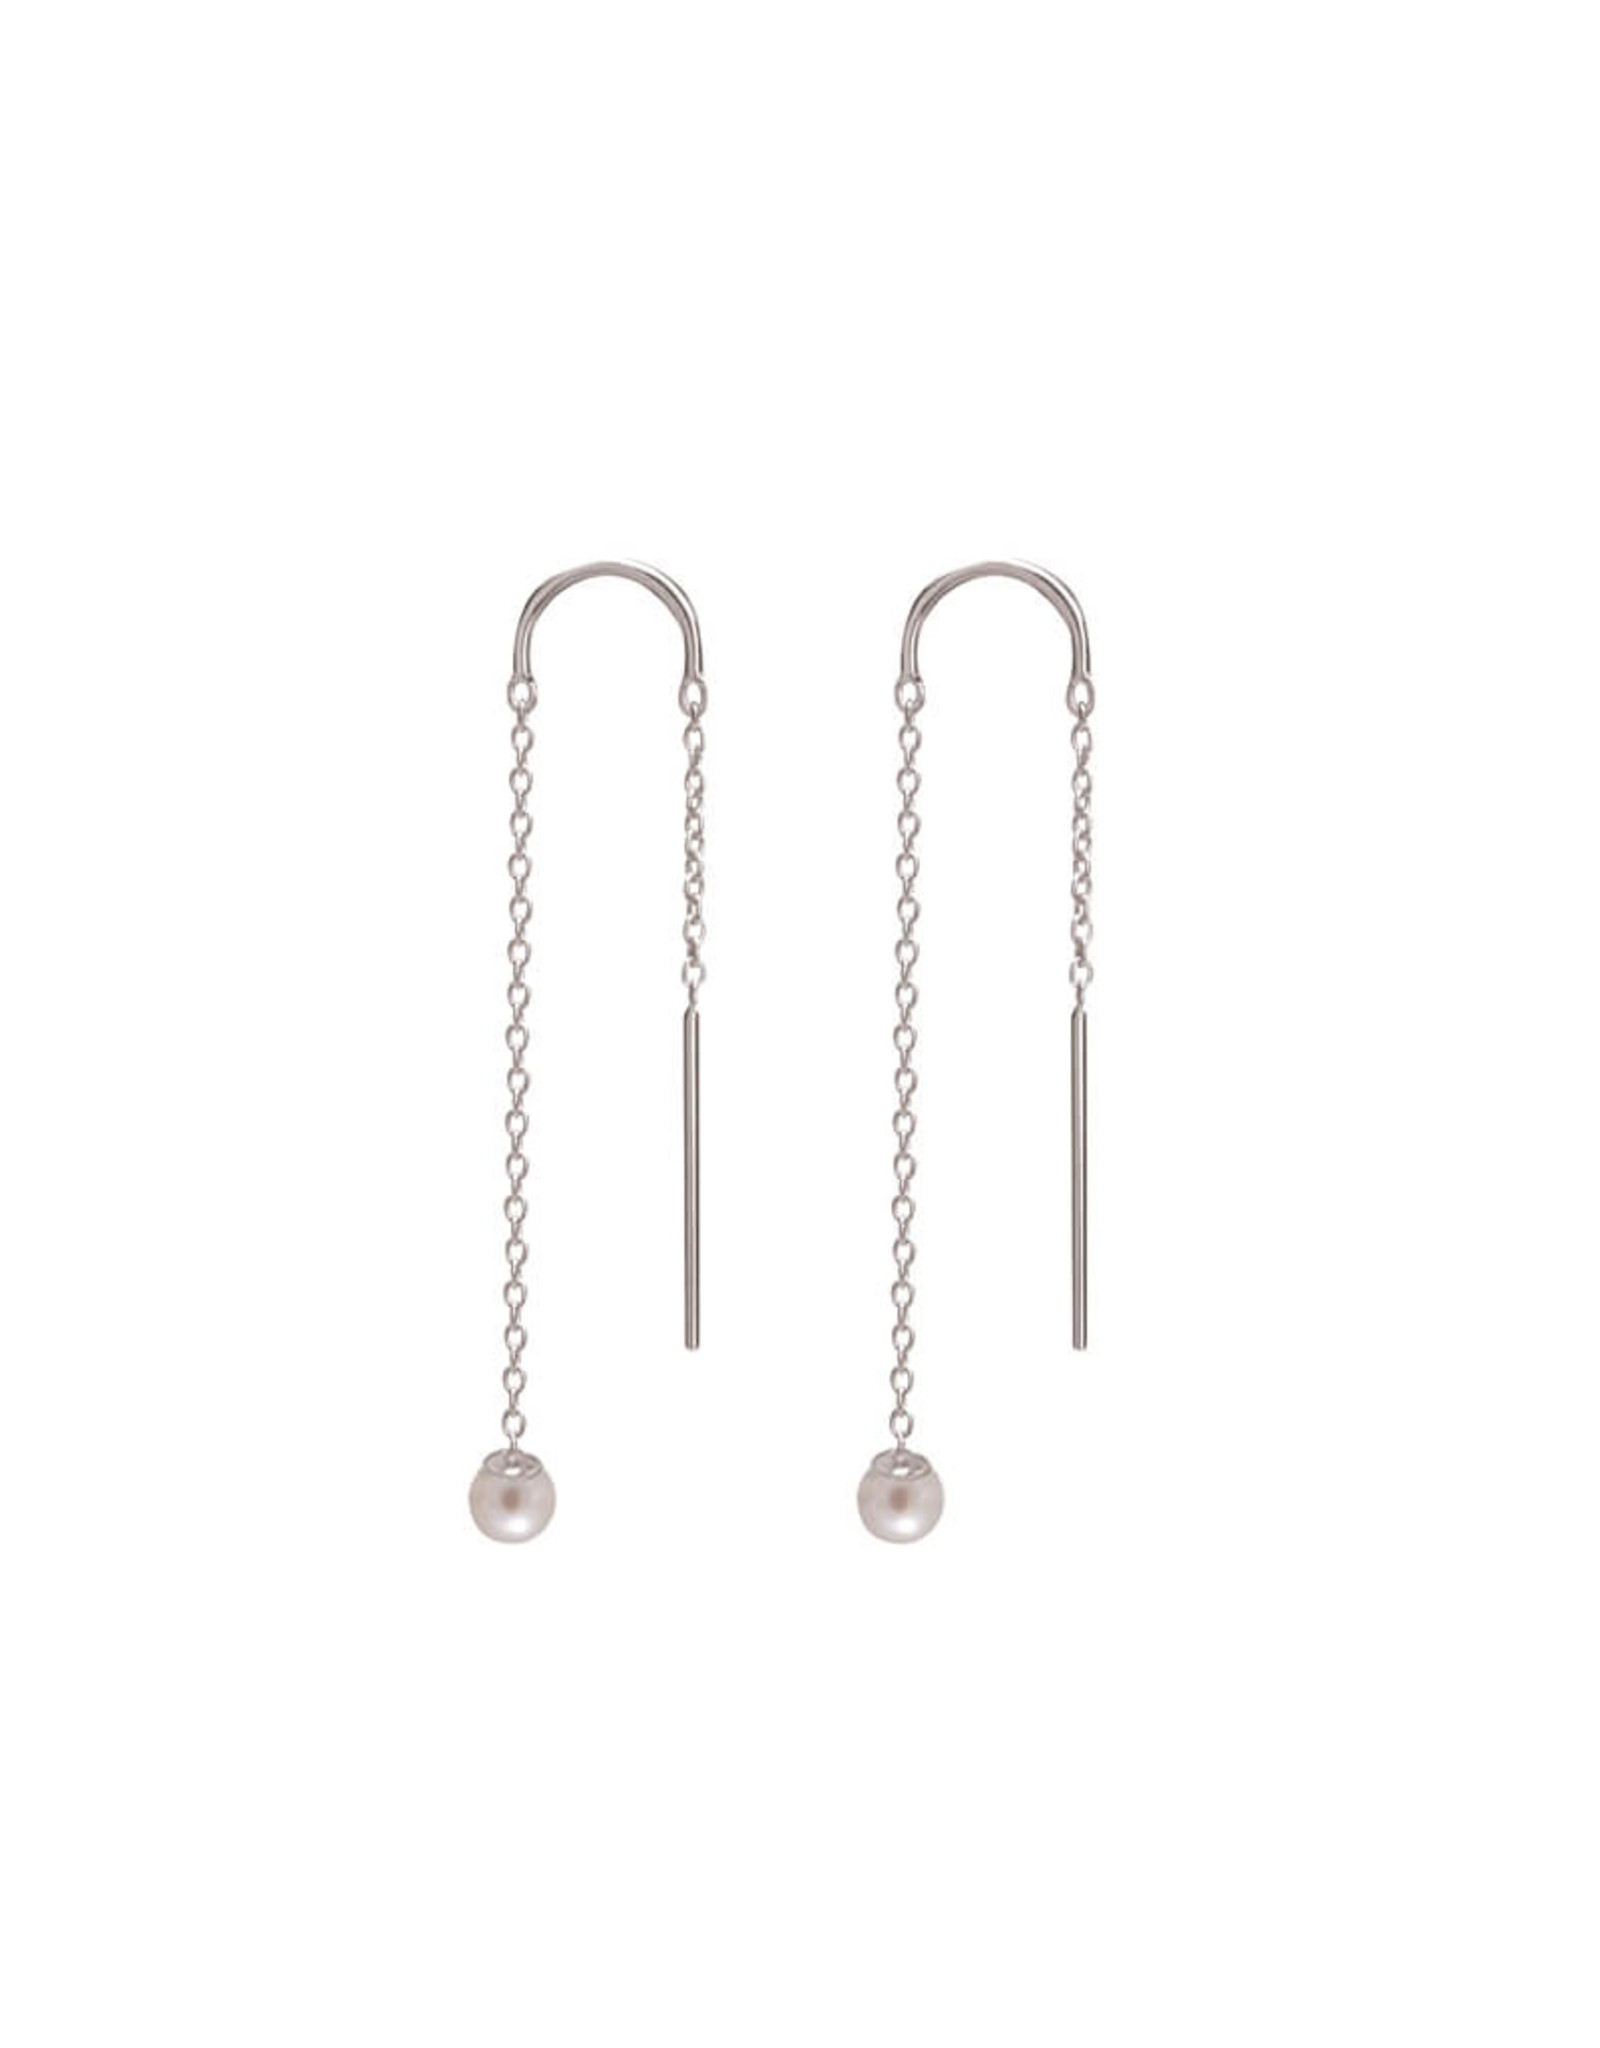 MURKANI RIVIERA PEARL THREAD EARRINGS STERLING SILVER WITH WHITE PEARL